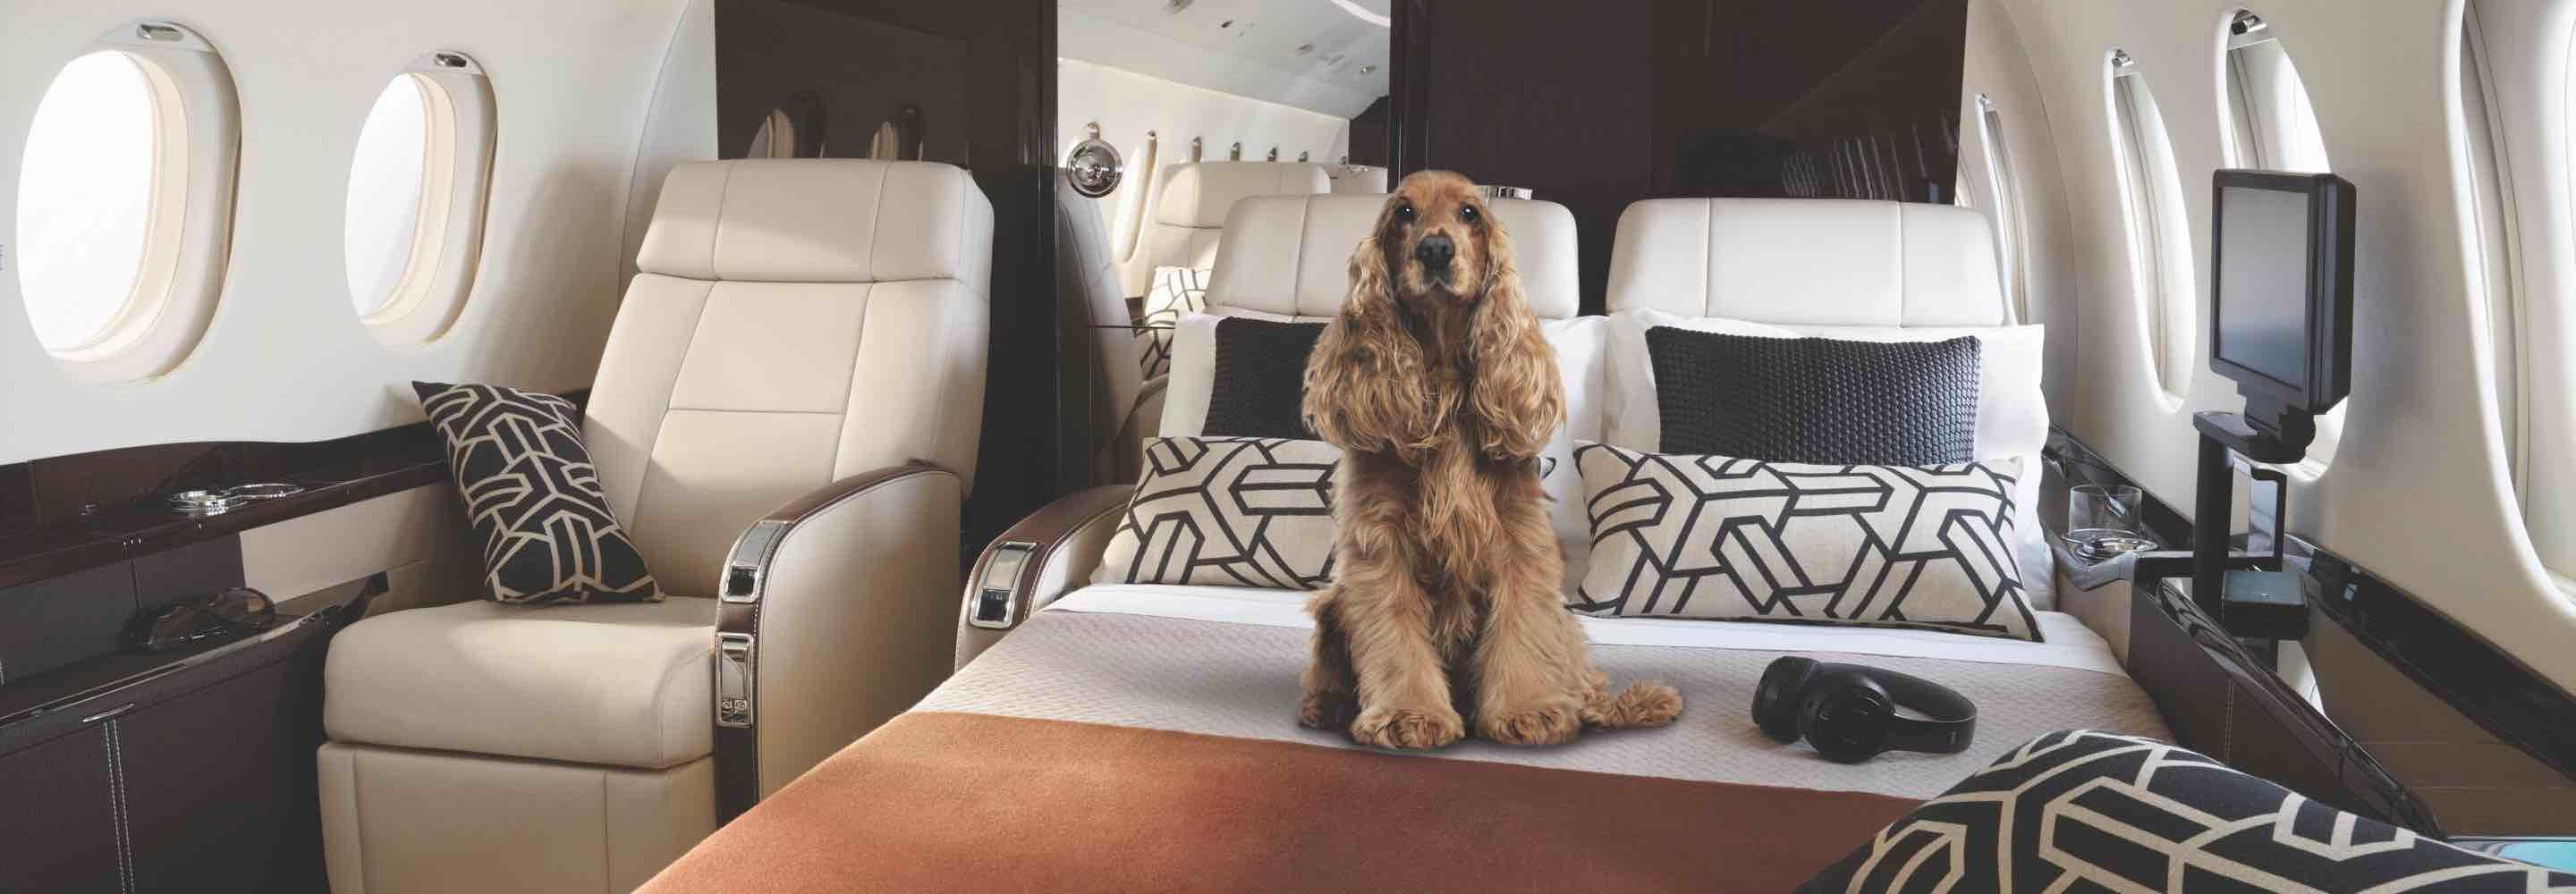 English Cocker Spaniel chocolate on a bed in a private jet illustrating flying with pets